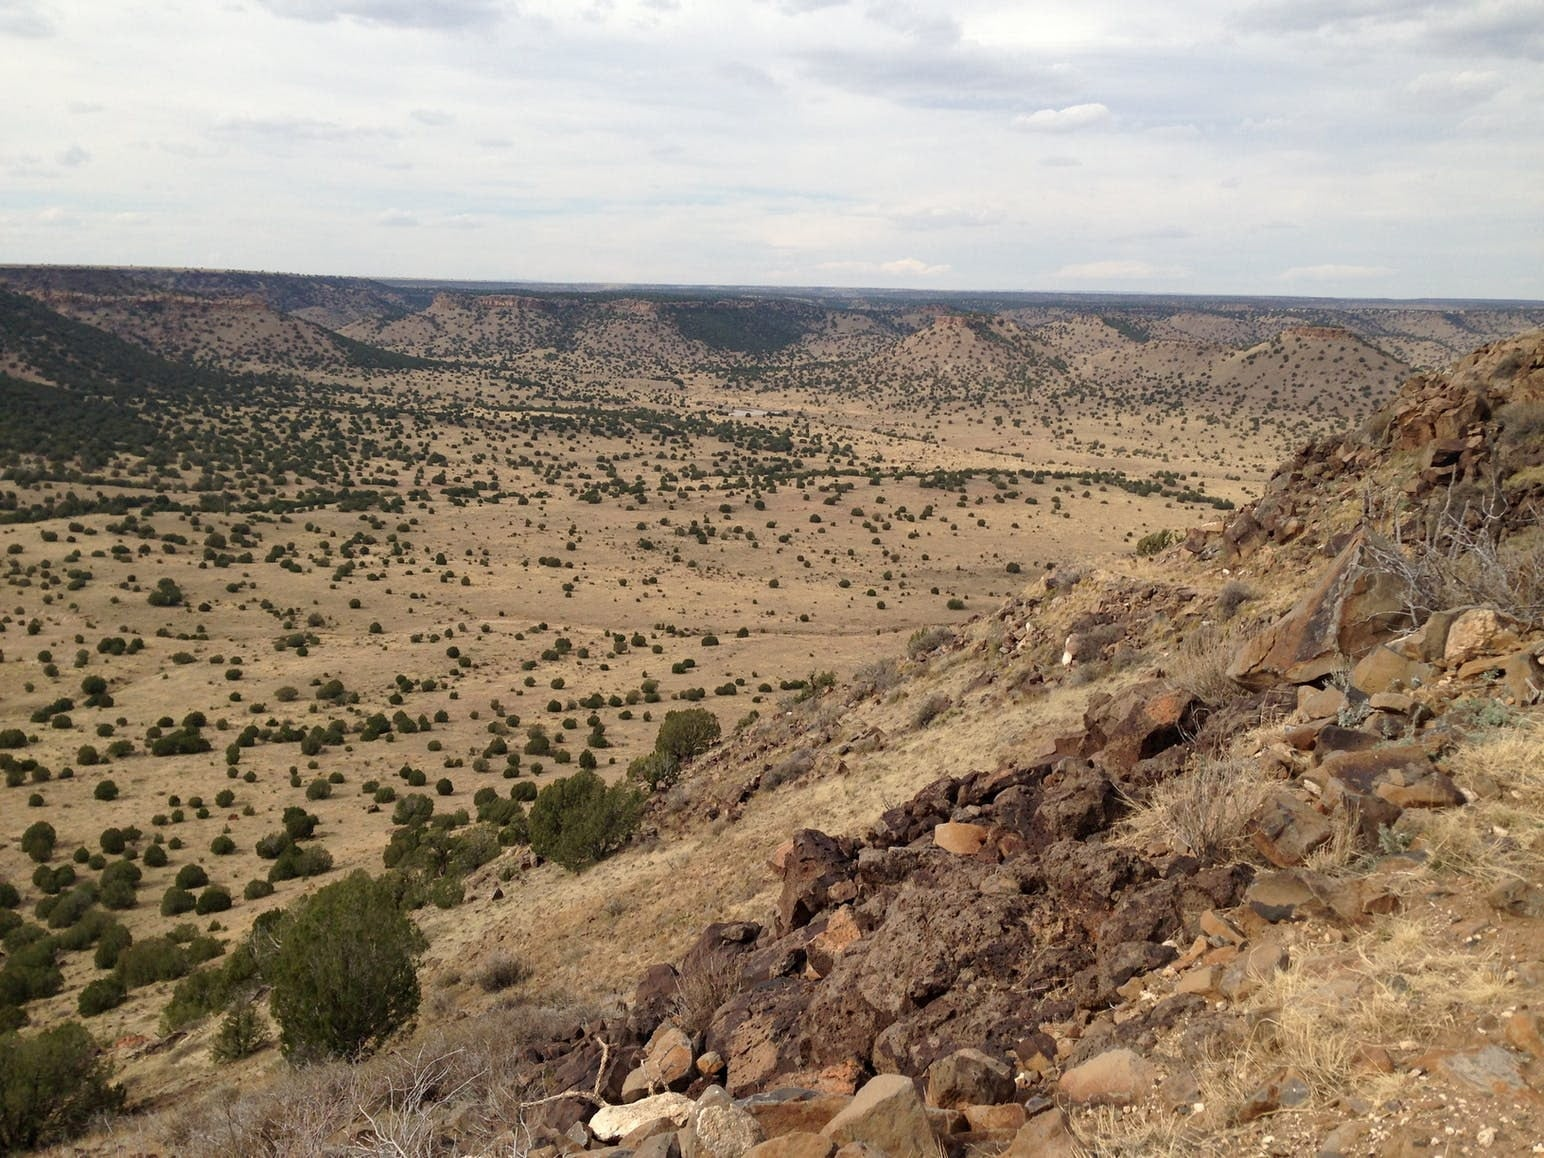 View of red rock of Black Mesa from the rim.